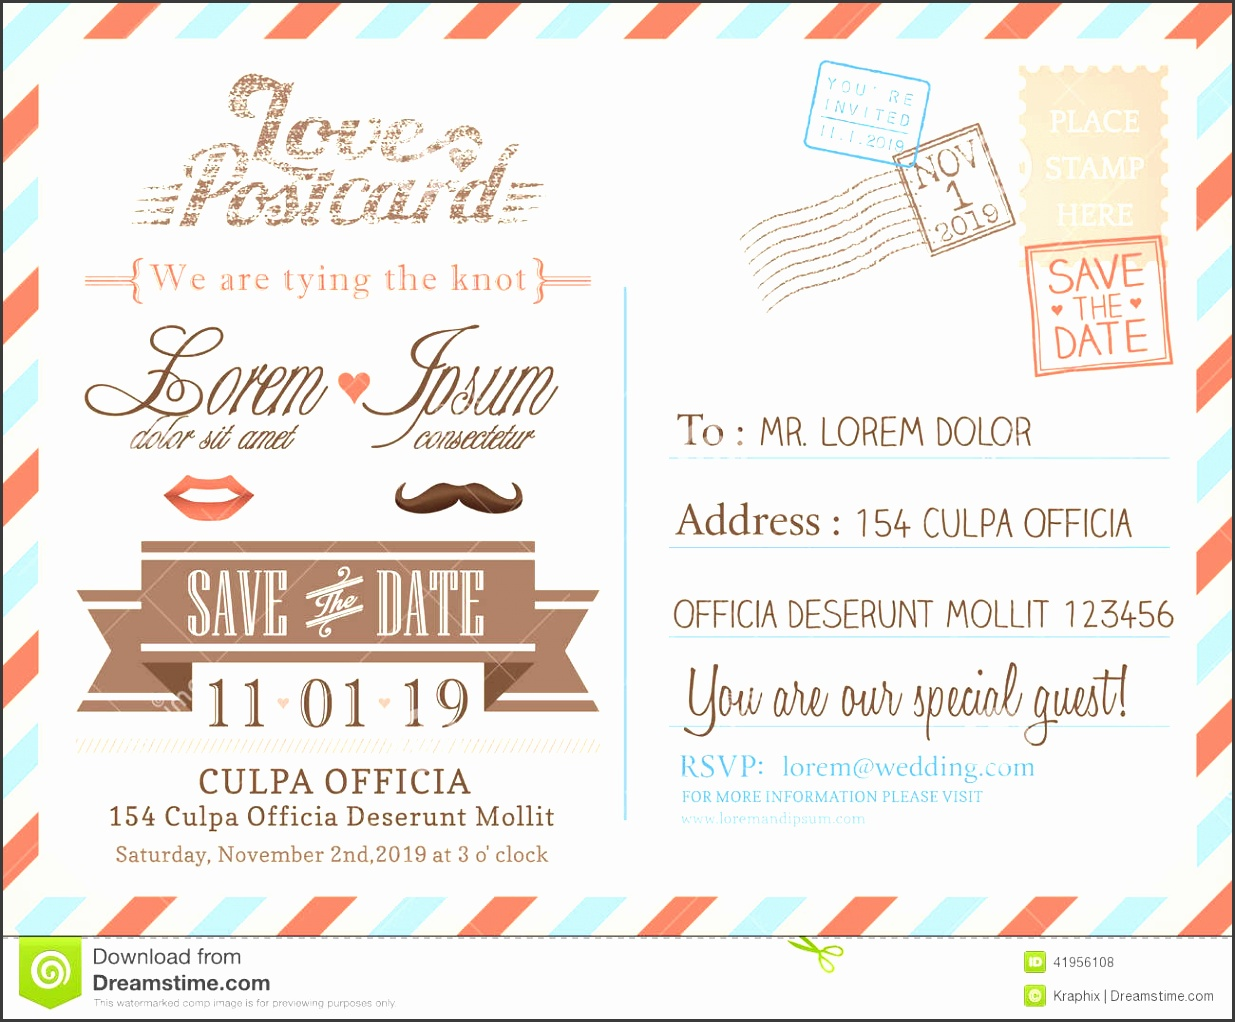 Postcard Wedding Invitations Template Free Vintage Airmail Postcard Background Template For Weddi With Wedding Card Templates